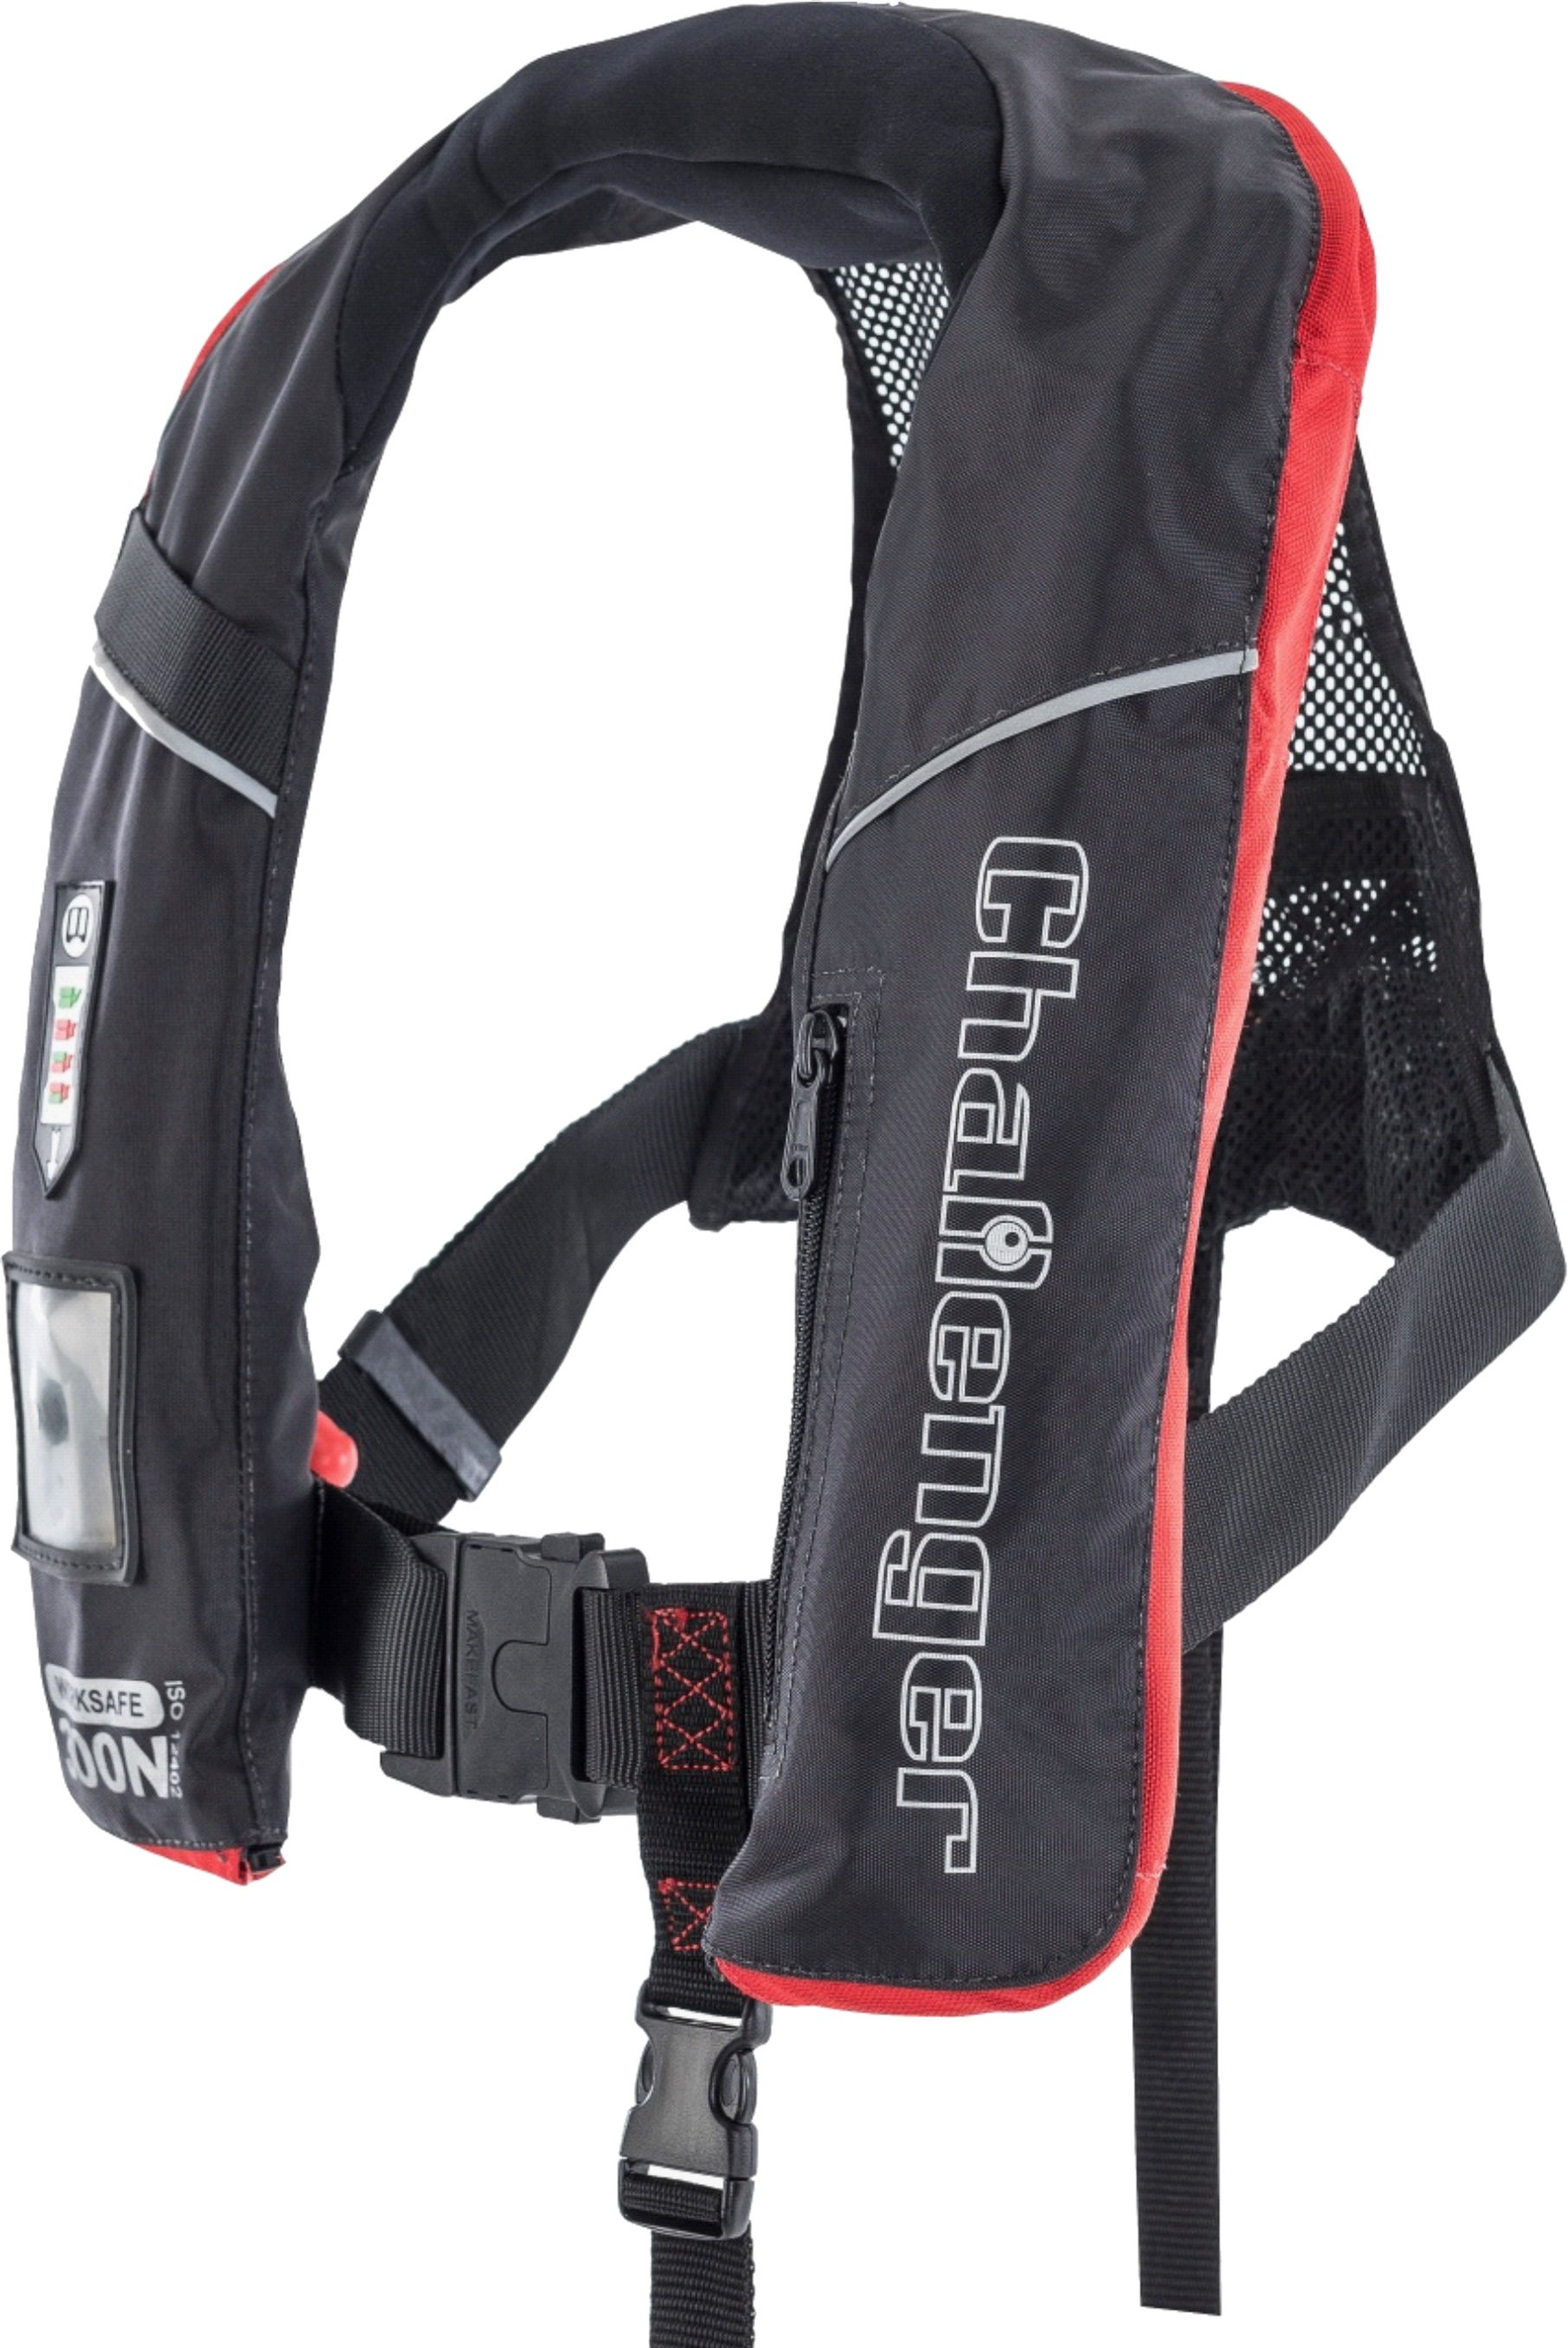 3Sis first METS showing for Challenger Worksafe Pro lifejacket